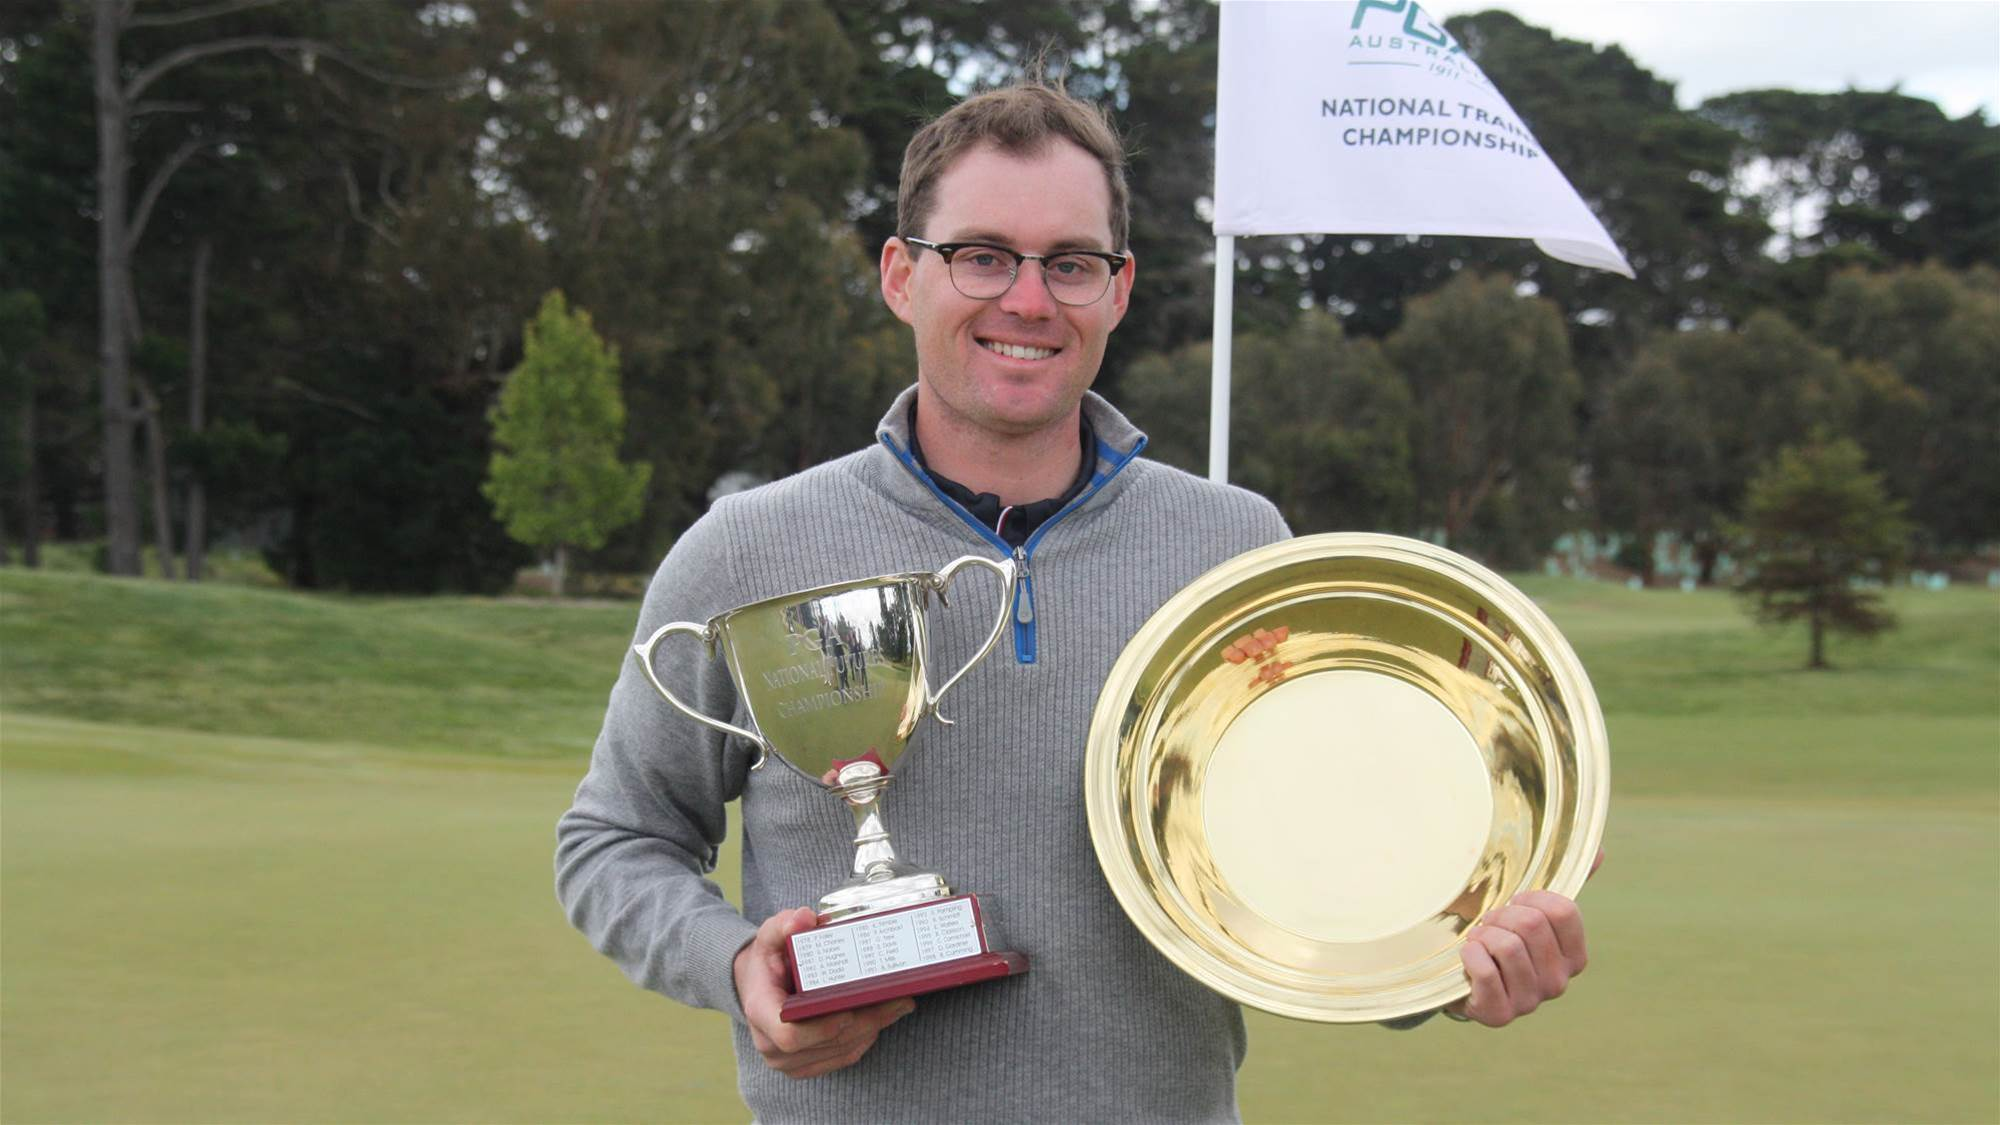 Stowe captures the National Futures Championship